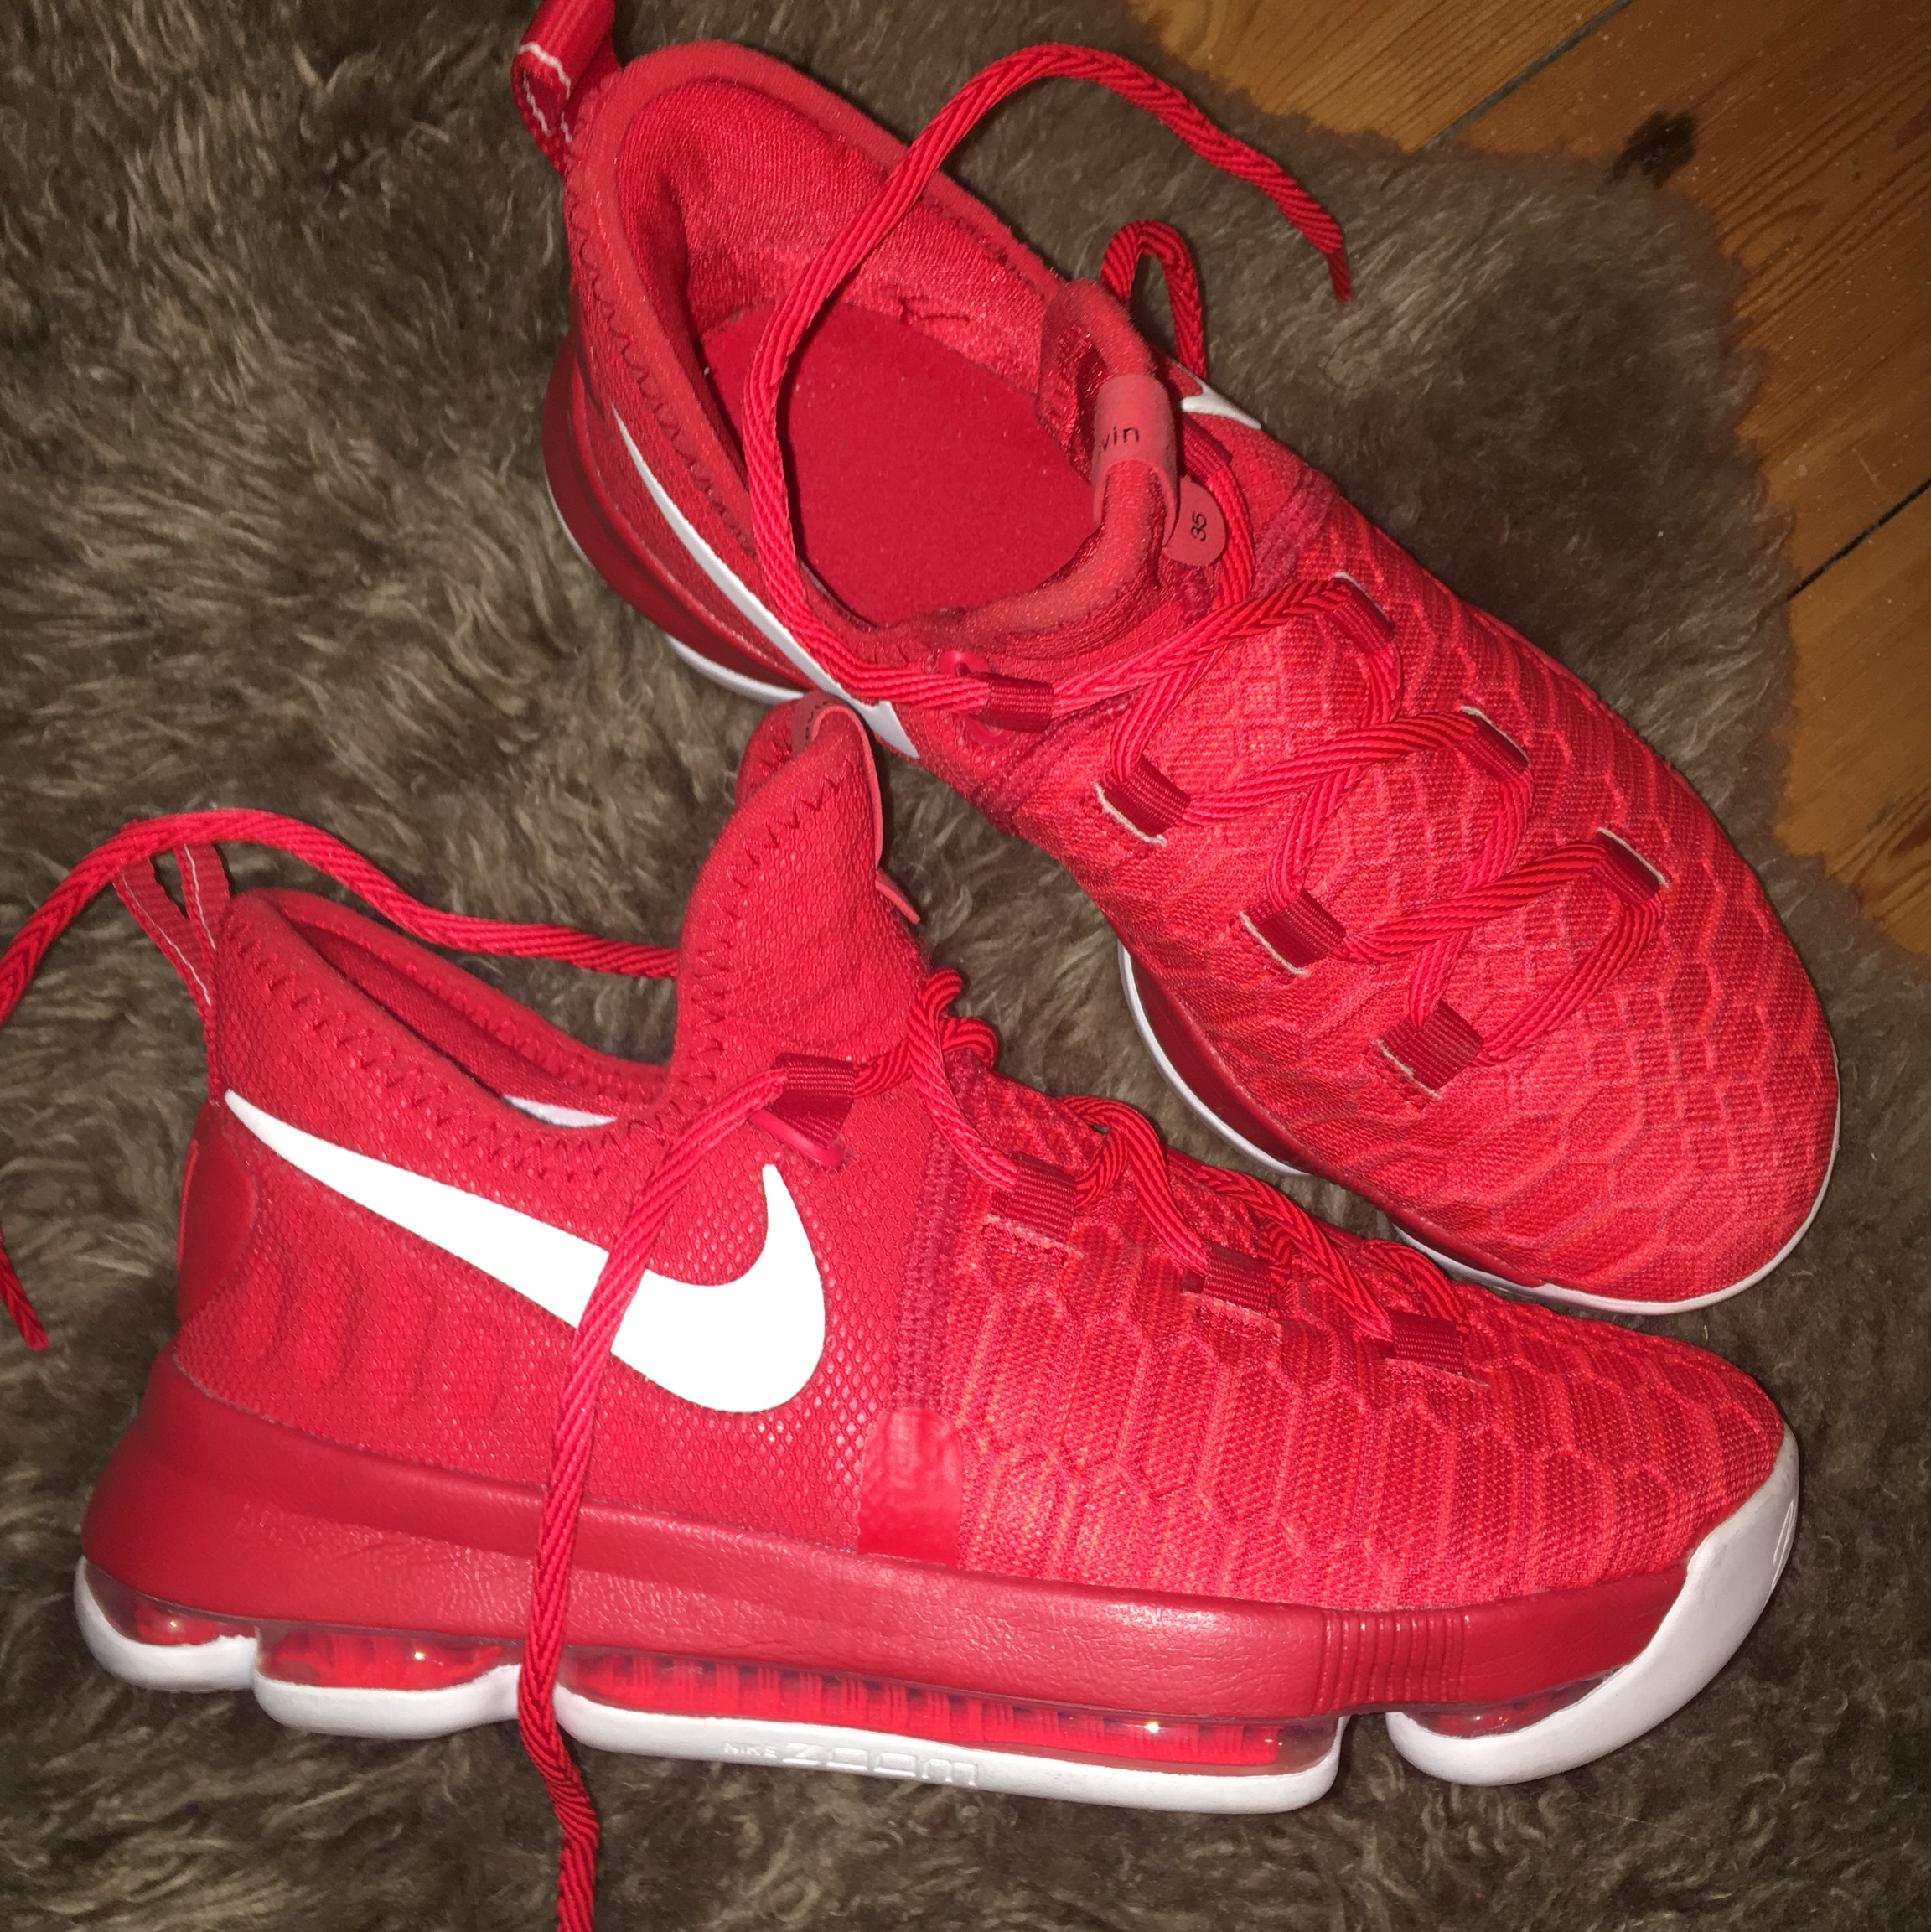 hot sale online 9988f 0dc58 Nike Zoom KD 9 Flyknit Varsity Red Basketball... - Depop